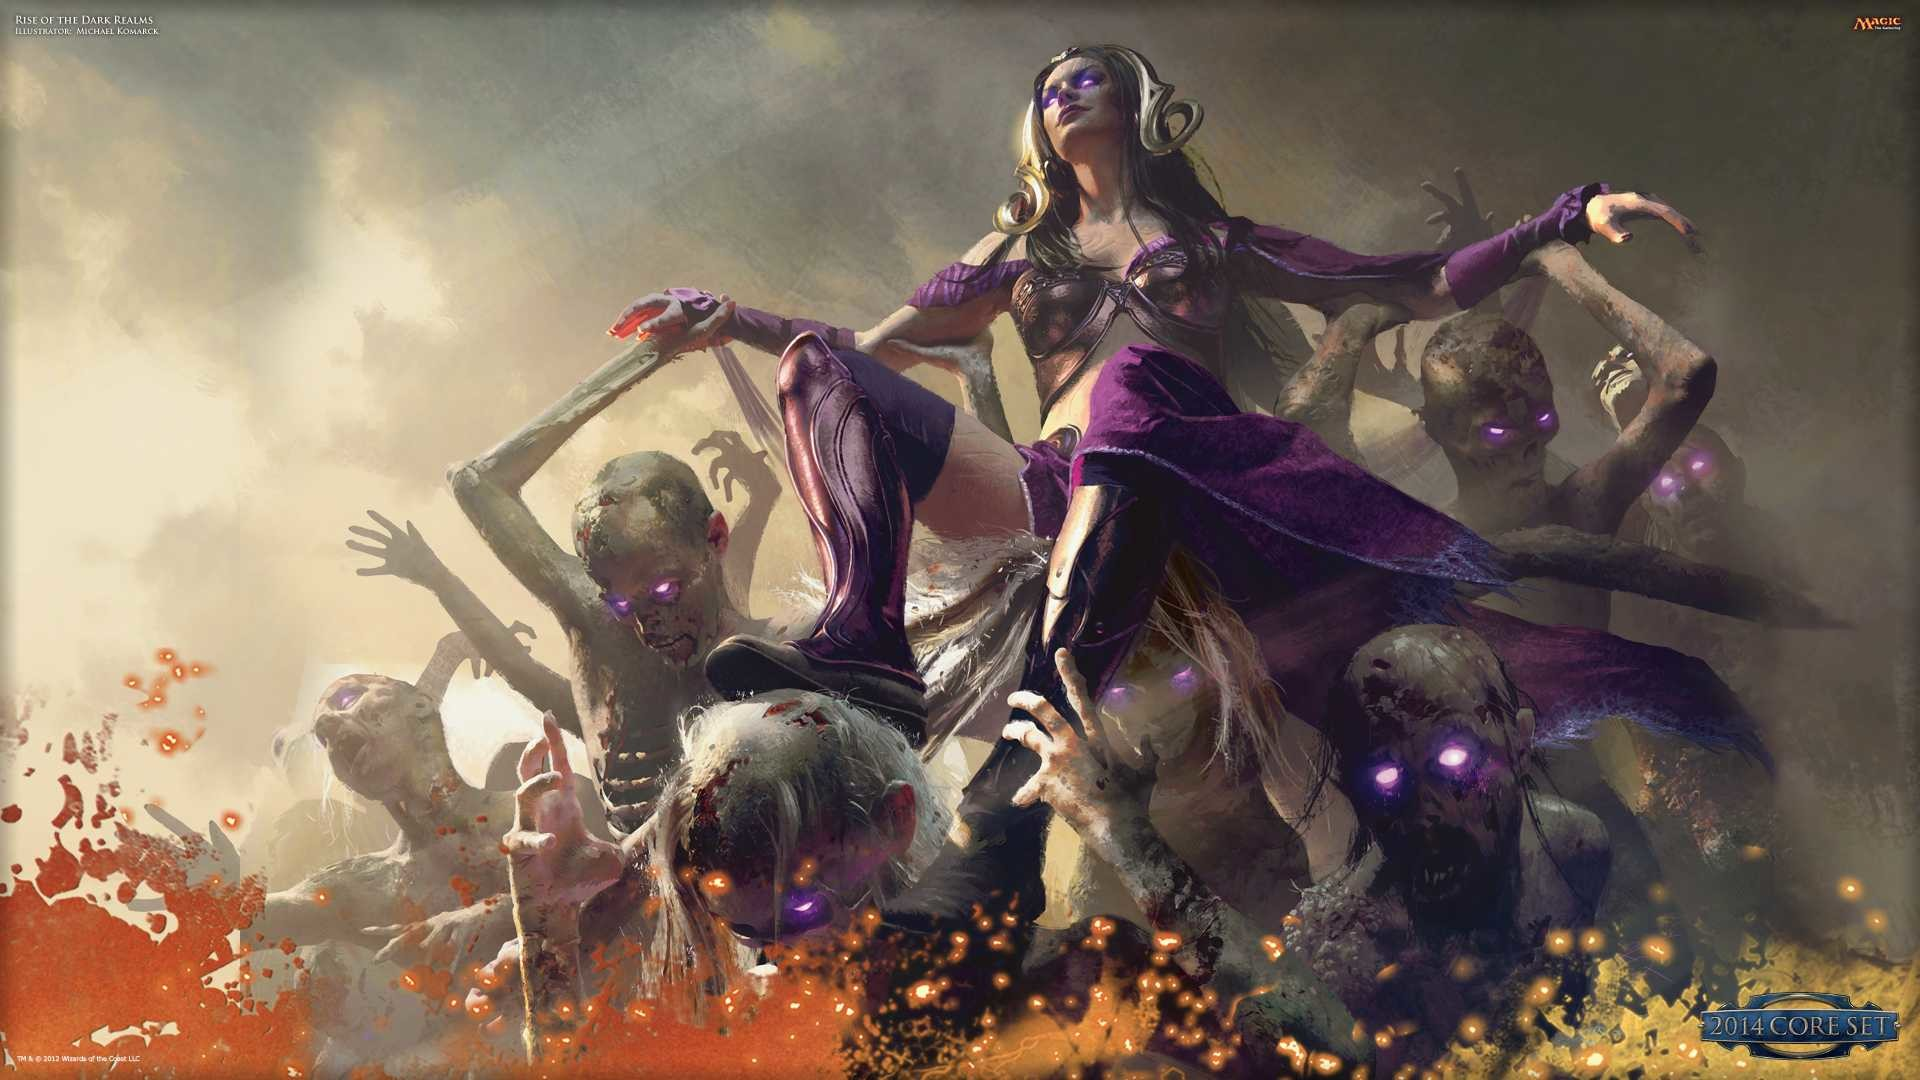 Res: 1920x1080, Magic The Gathering Full Hd Wallpaper And Background Image Backgrounds For  Smartphone High Resolution